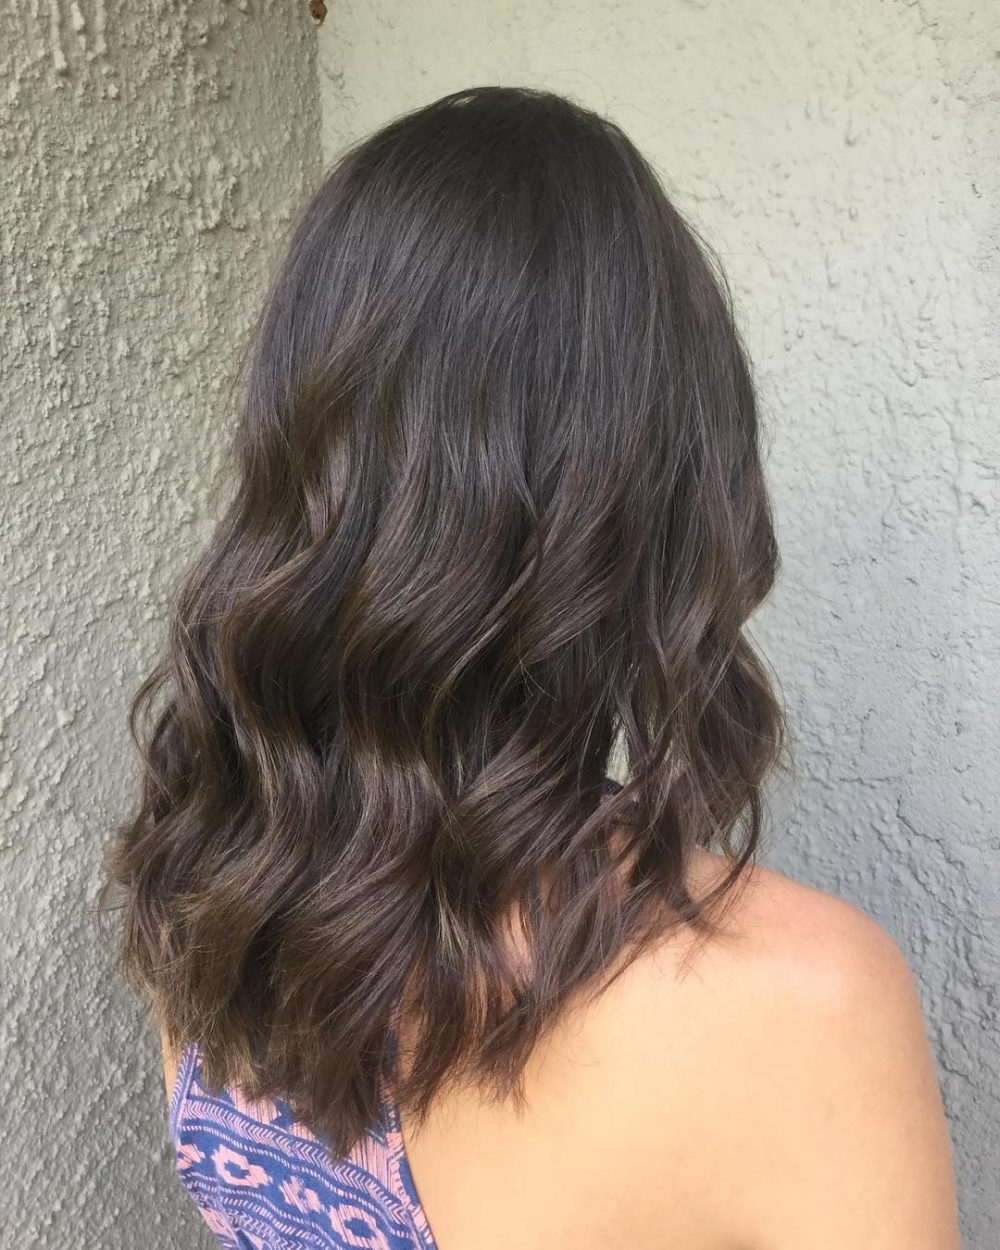 37 Chic Medium Length Wavy Hairstyles In 2019 With Regard To Most Current Medium Haircuts For Wavy Hair (Gallery 7 of 20)